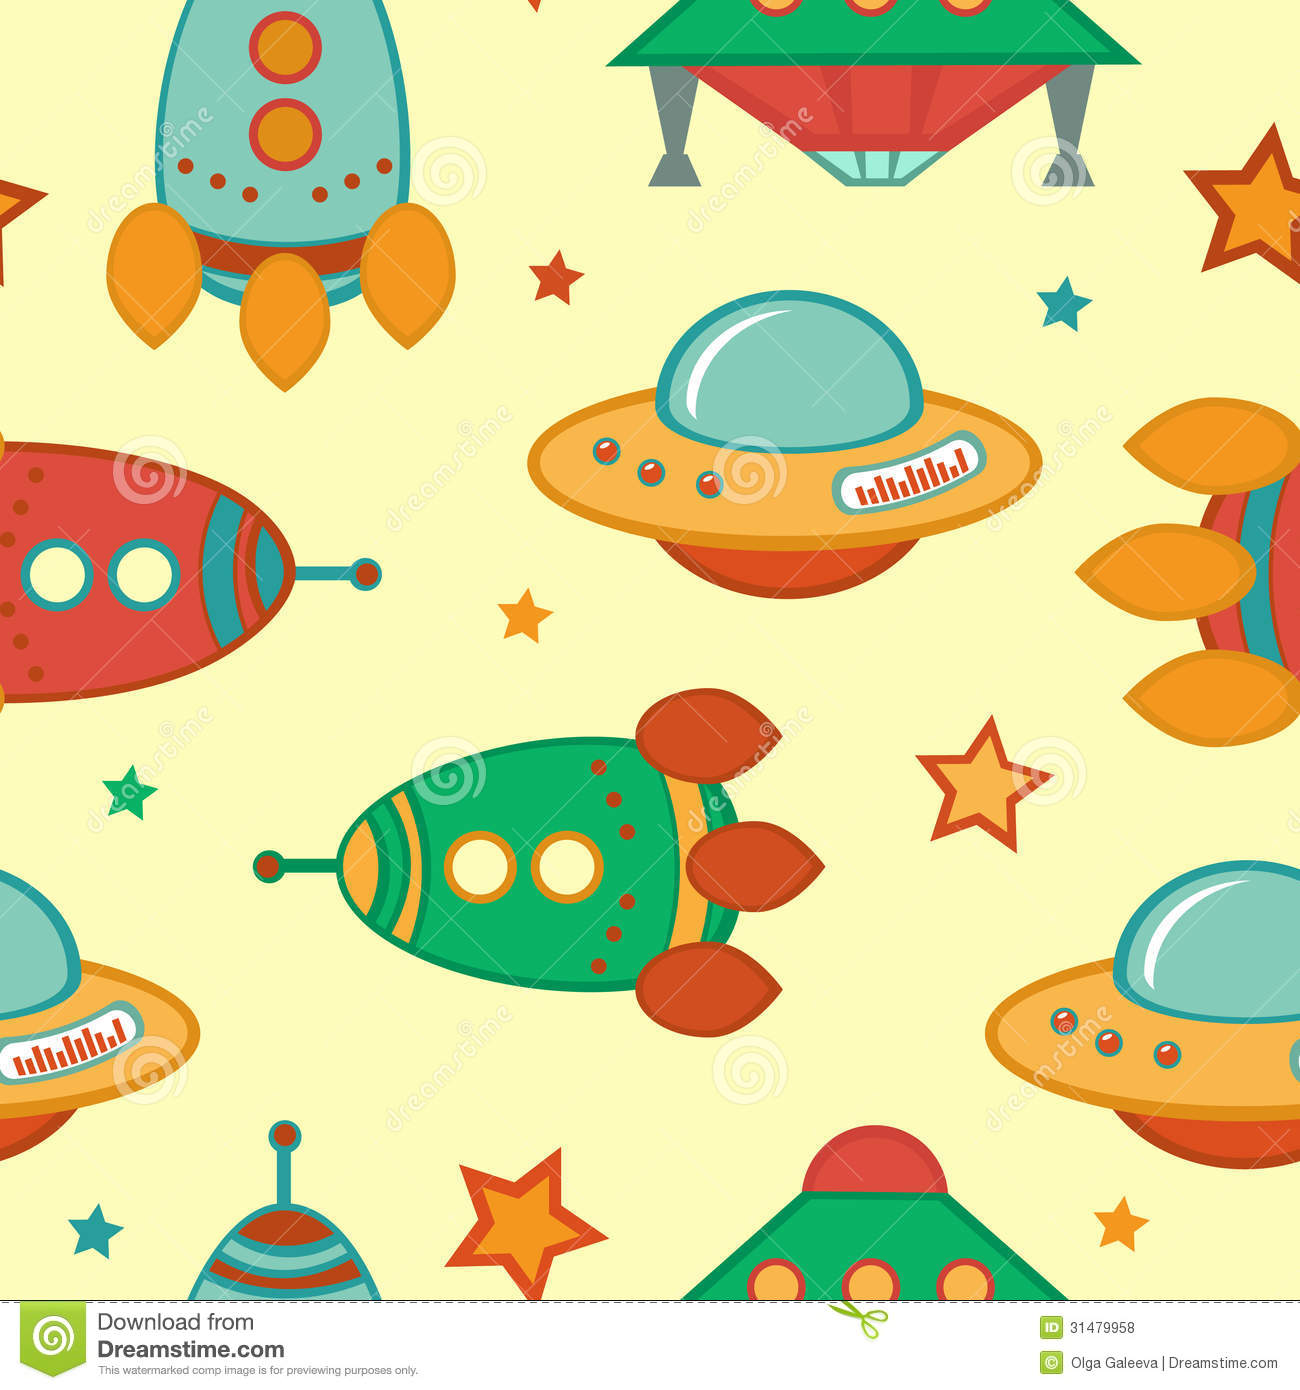 Outer space pattern royalty free stock photos image for Outer space pattern